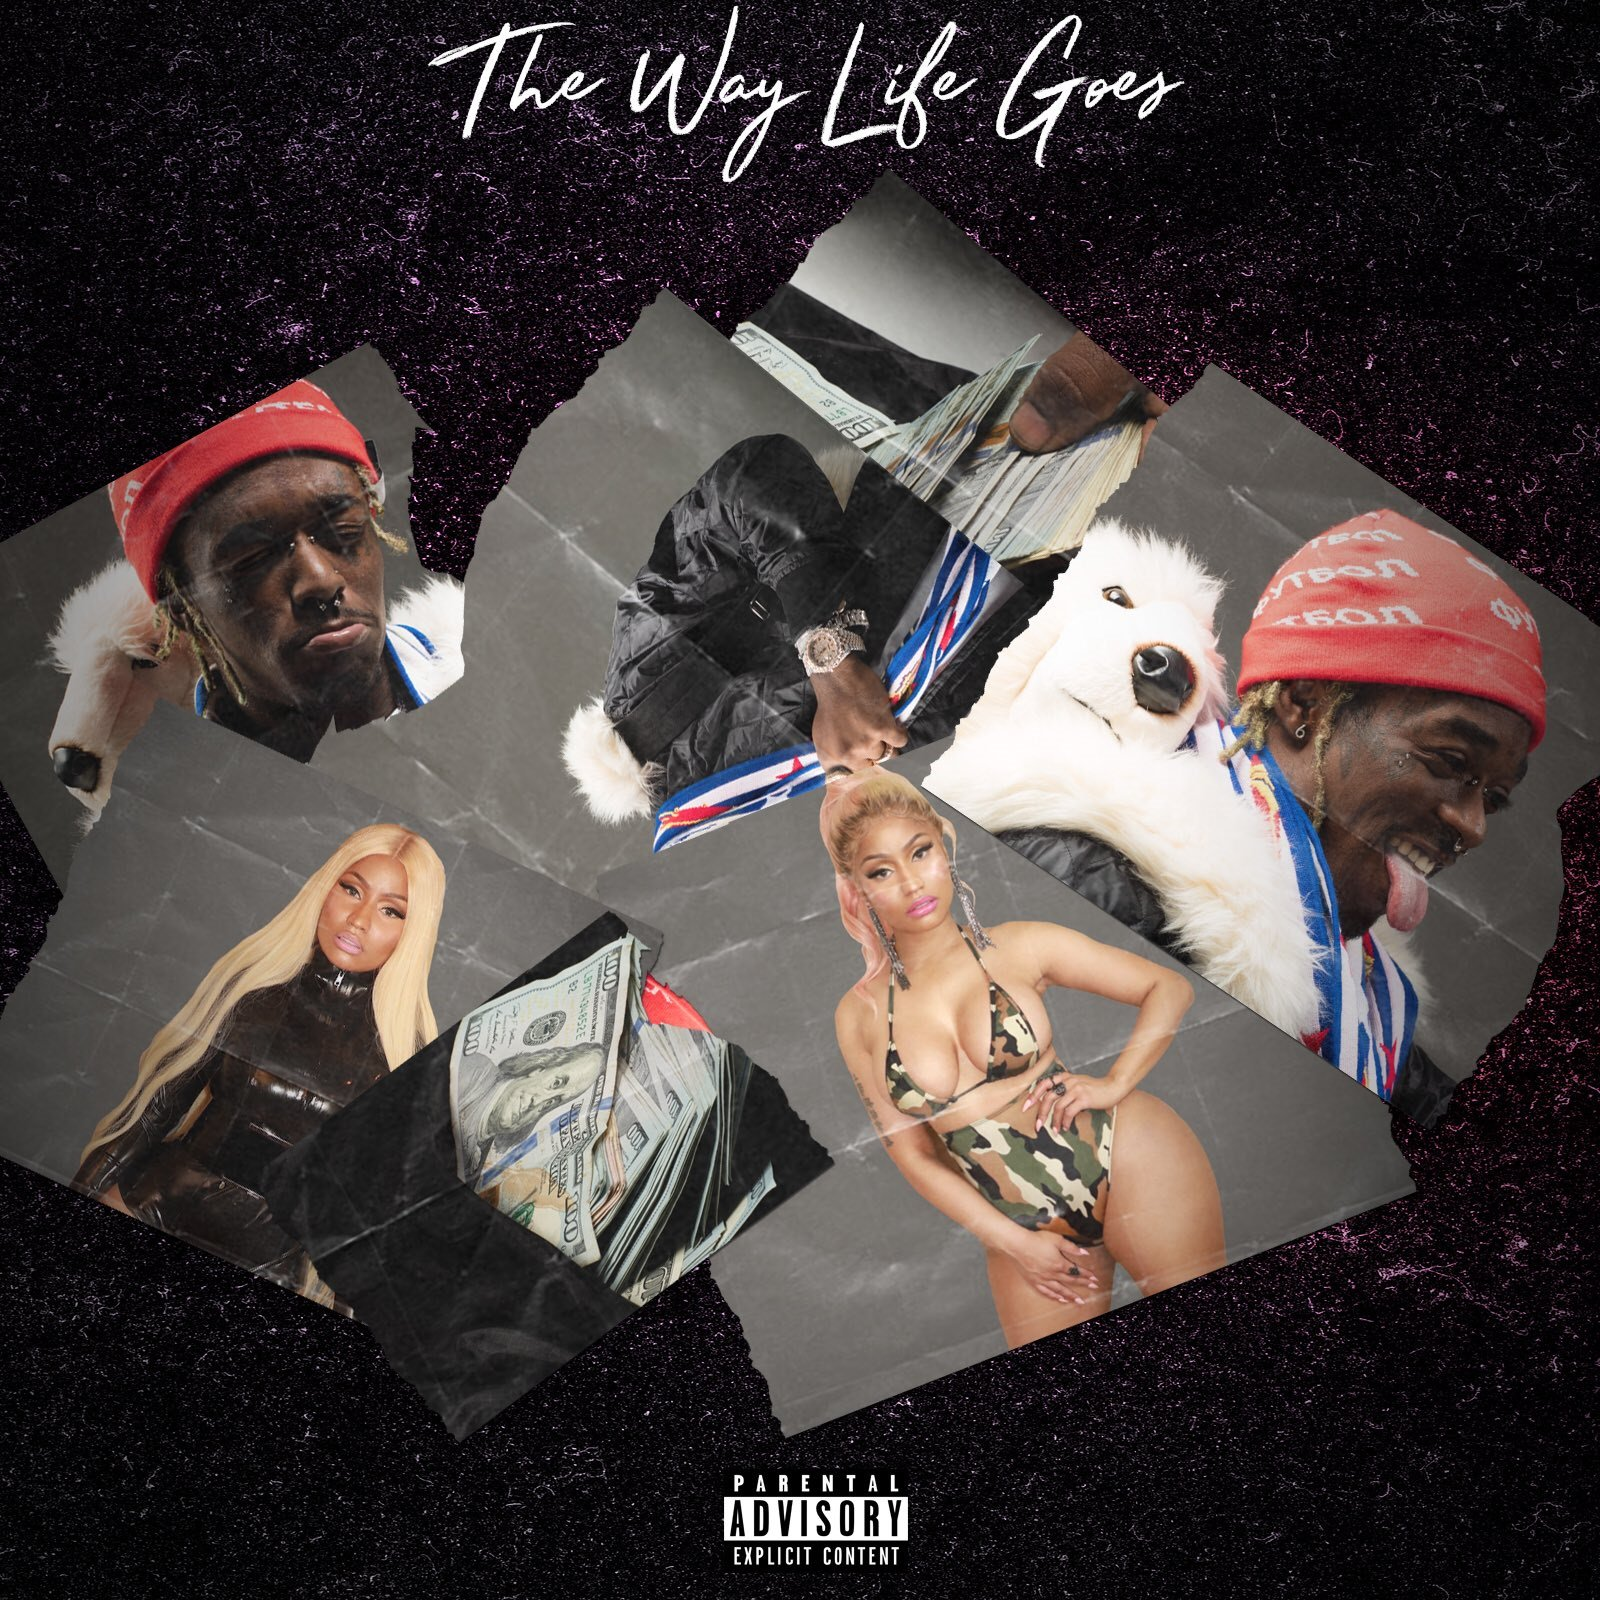 Lil Uzi Vert – The Way Life Goes (Remix) (feat. Nicki Minaj)